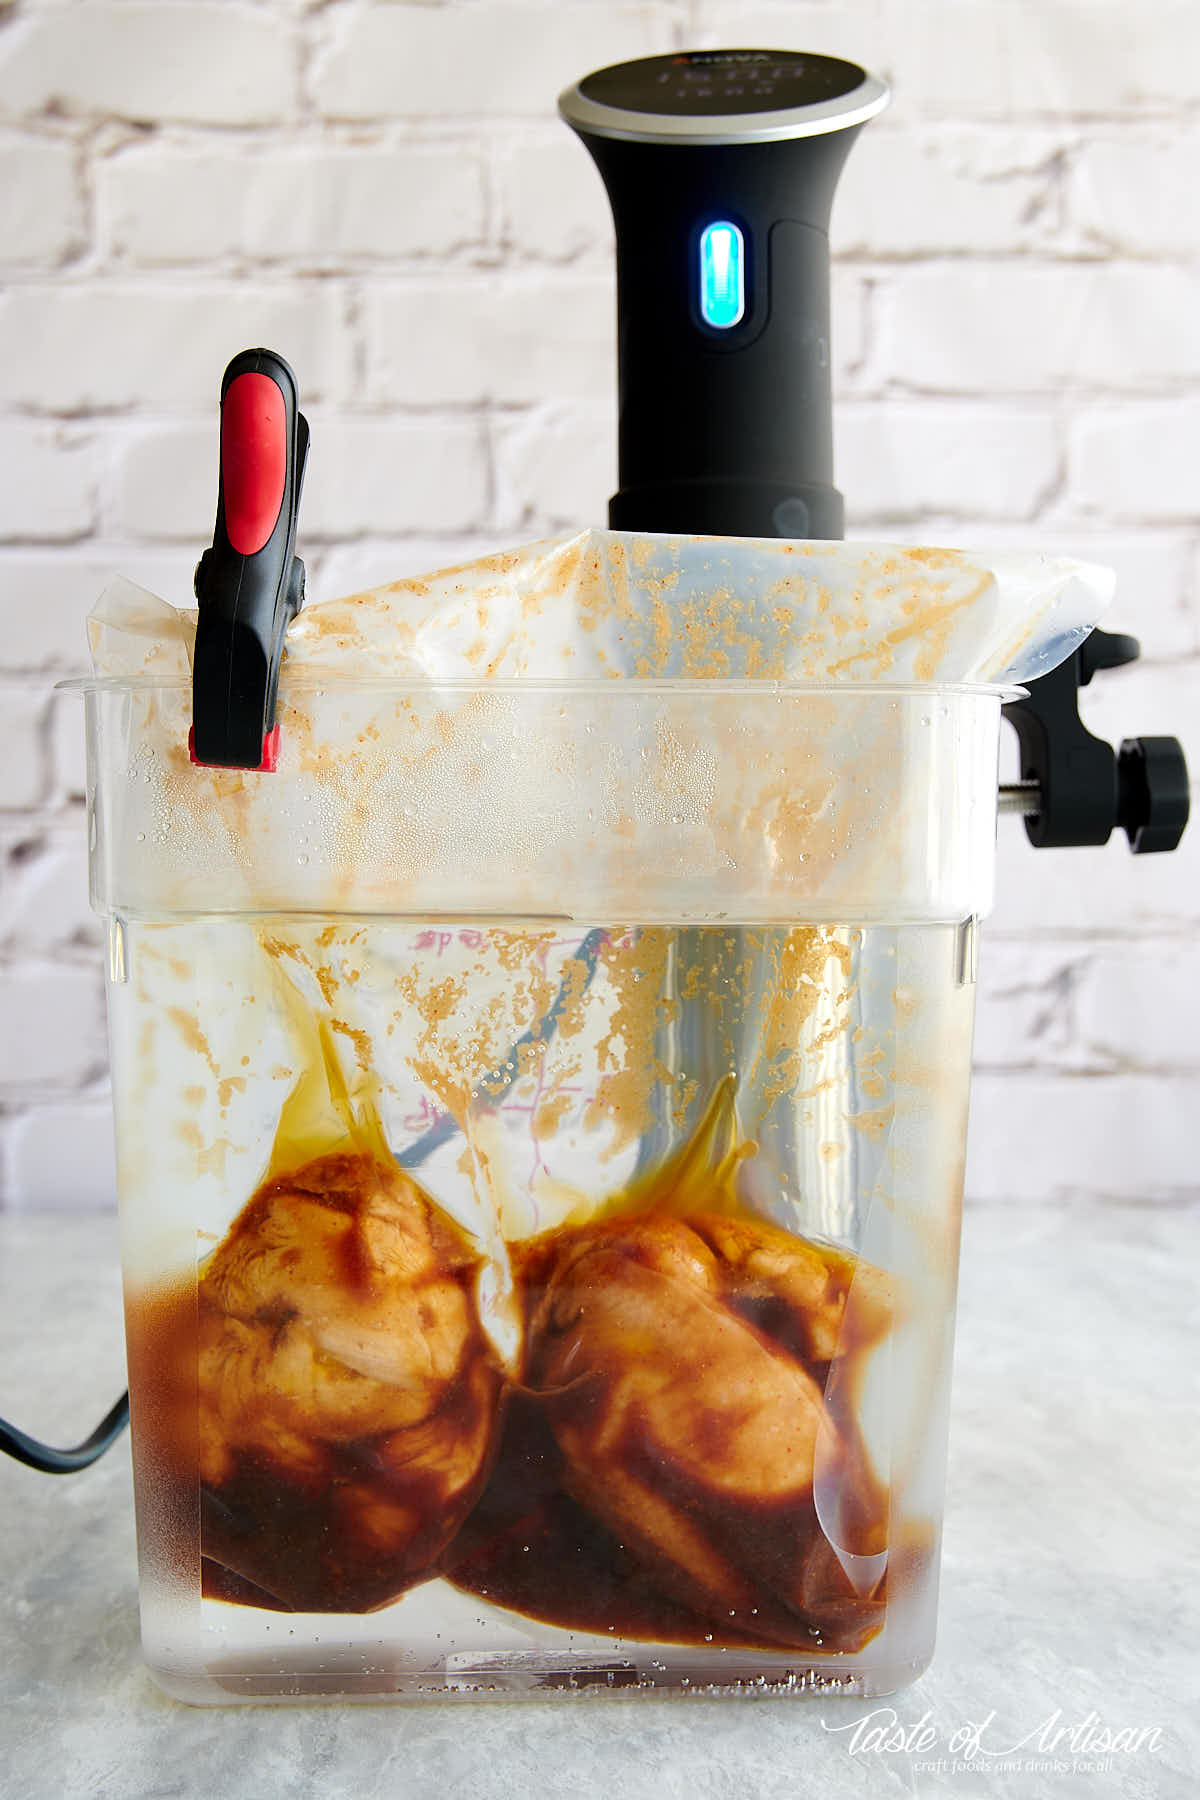 Two chicken breasts in a vacuum sealed bag with sauce cooking inside a clear container filled with water and with a sous vide circulator.